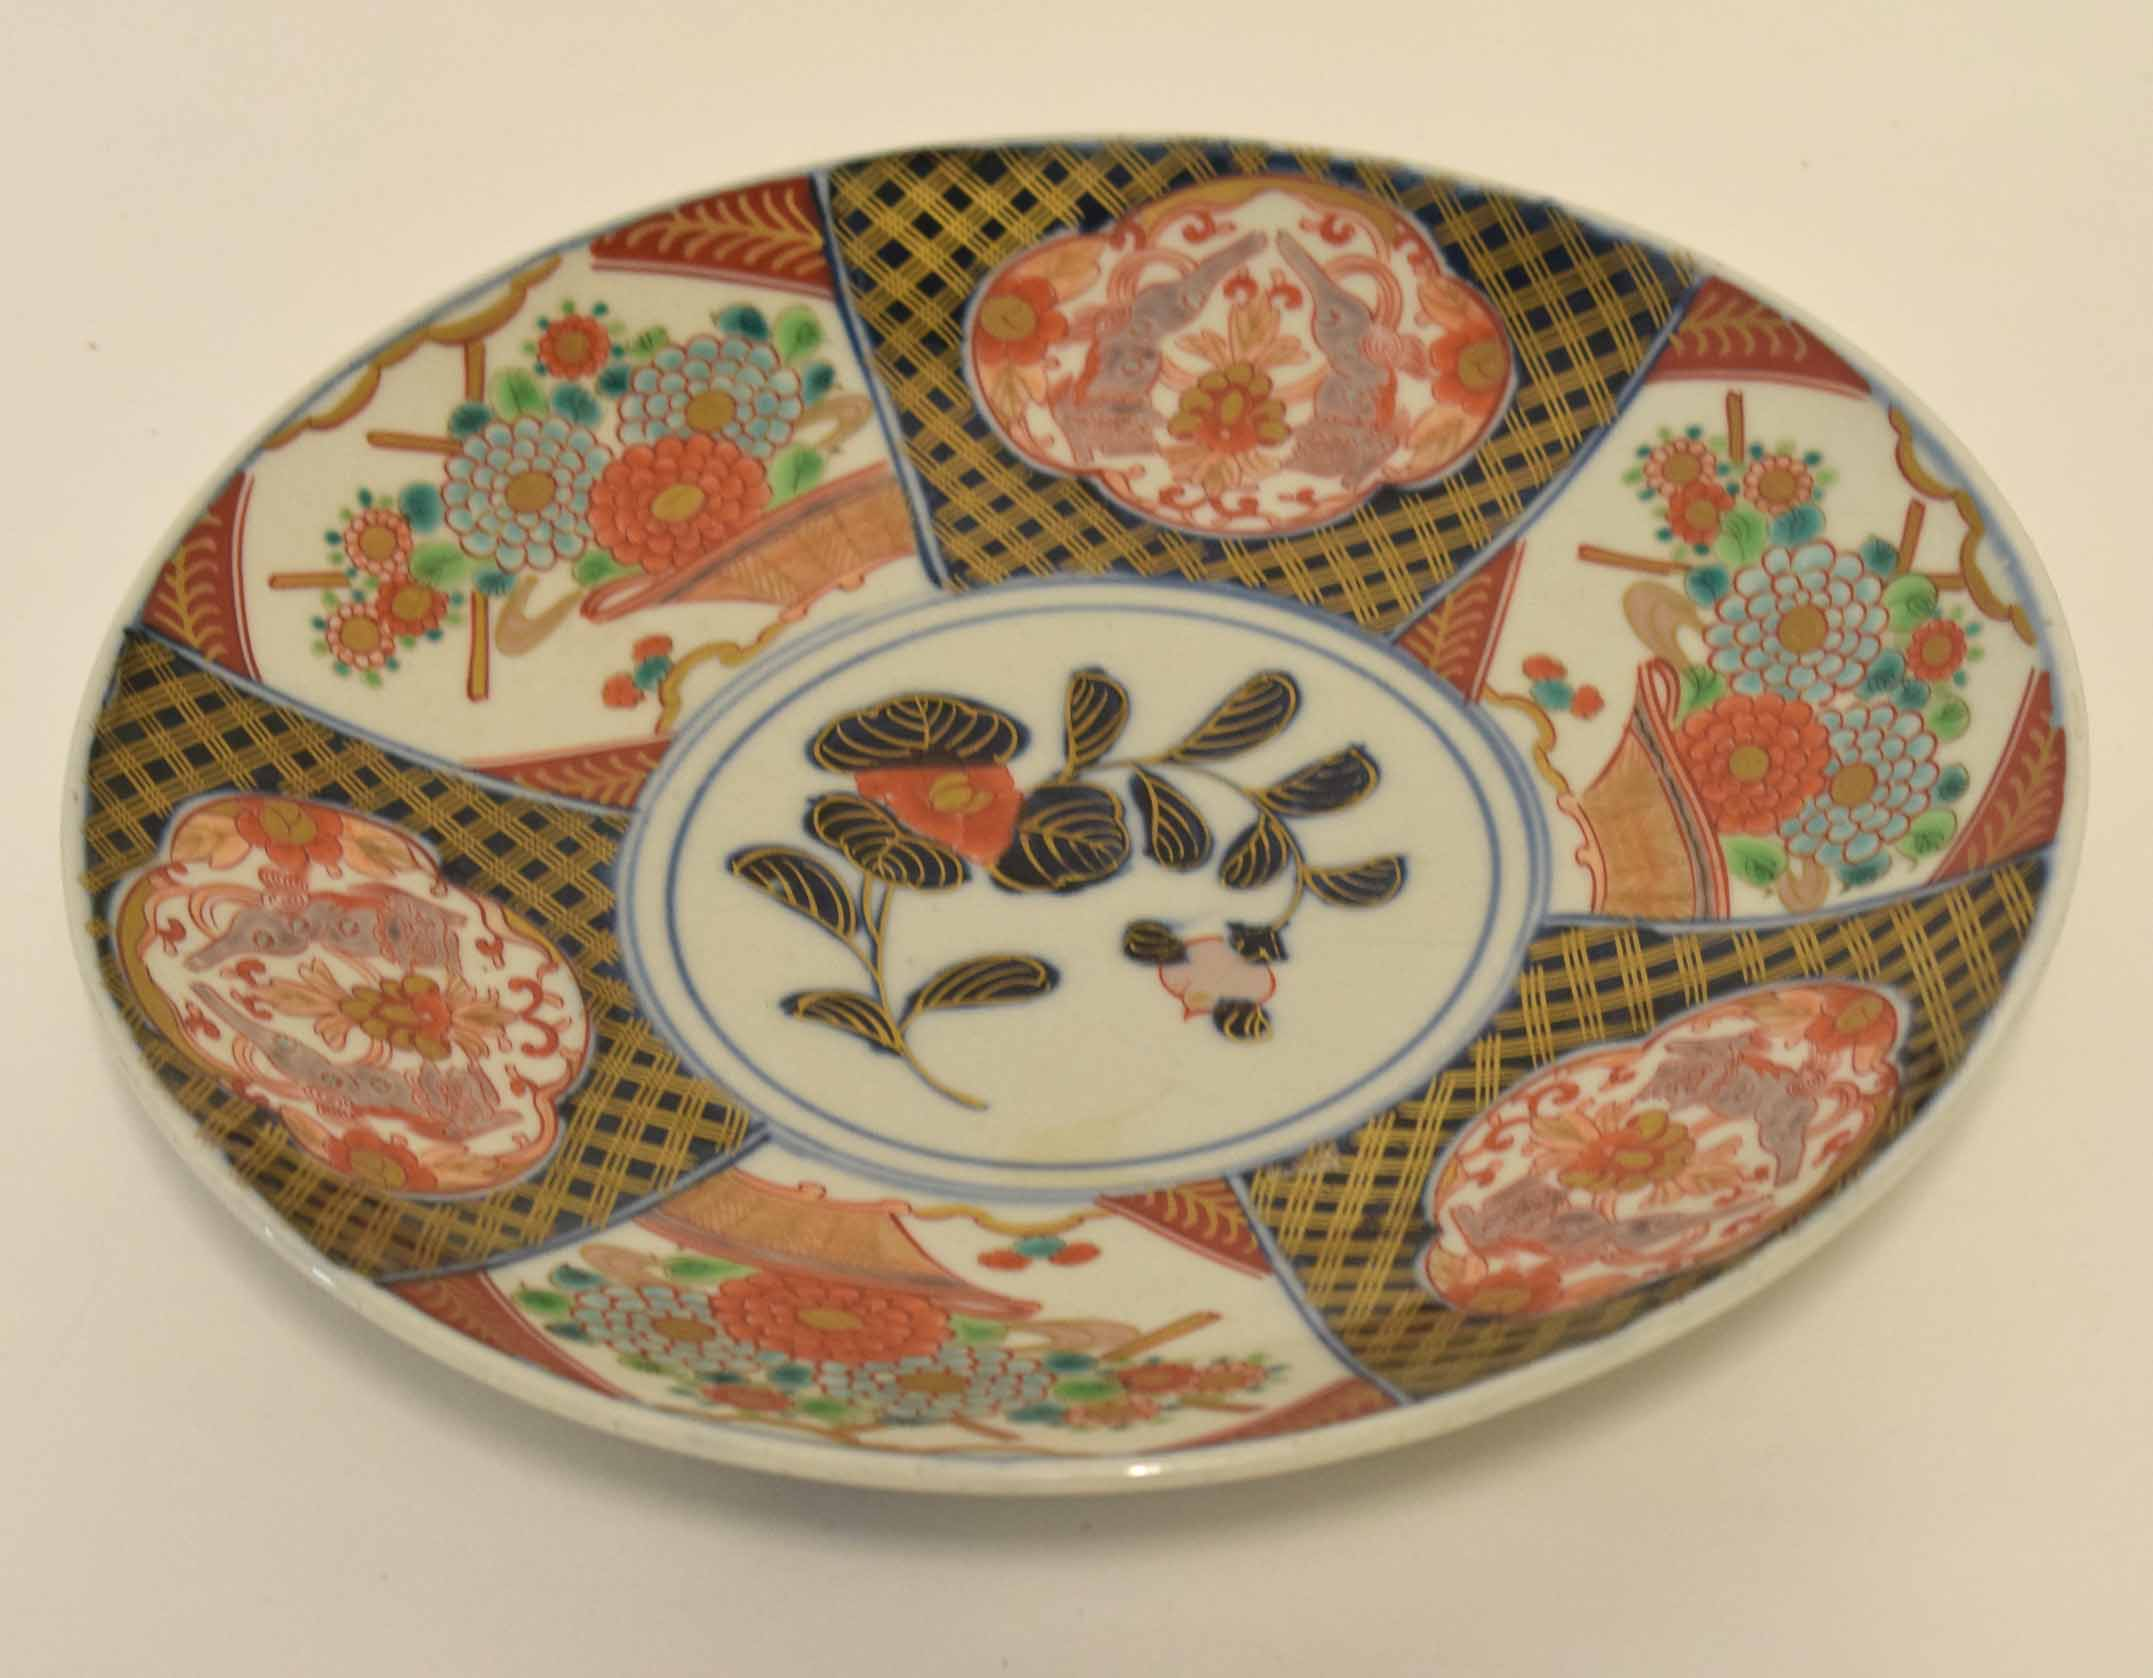 Lot 43 - Japanese porcelain dish with Imari designs and alternating panels of flower heads and dragons,